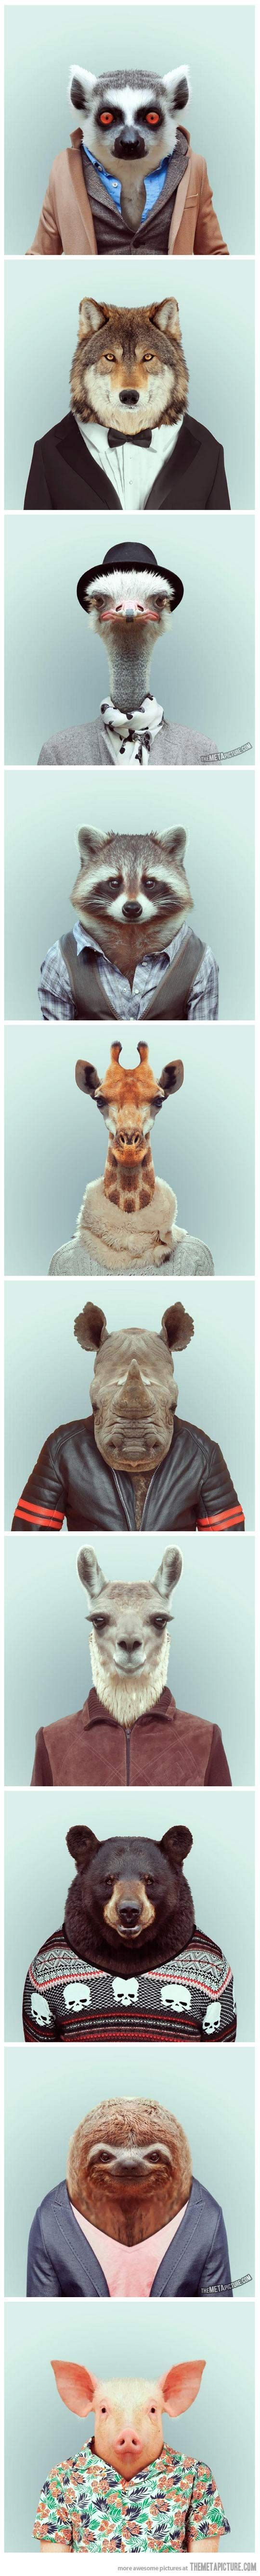 Funny portraits of animals dressed like humans…: